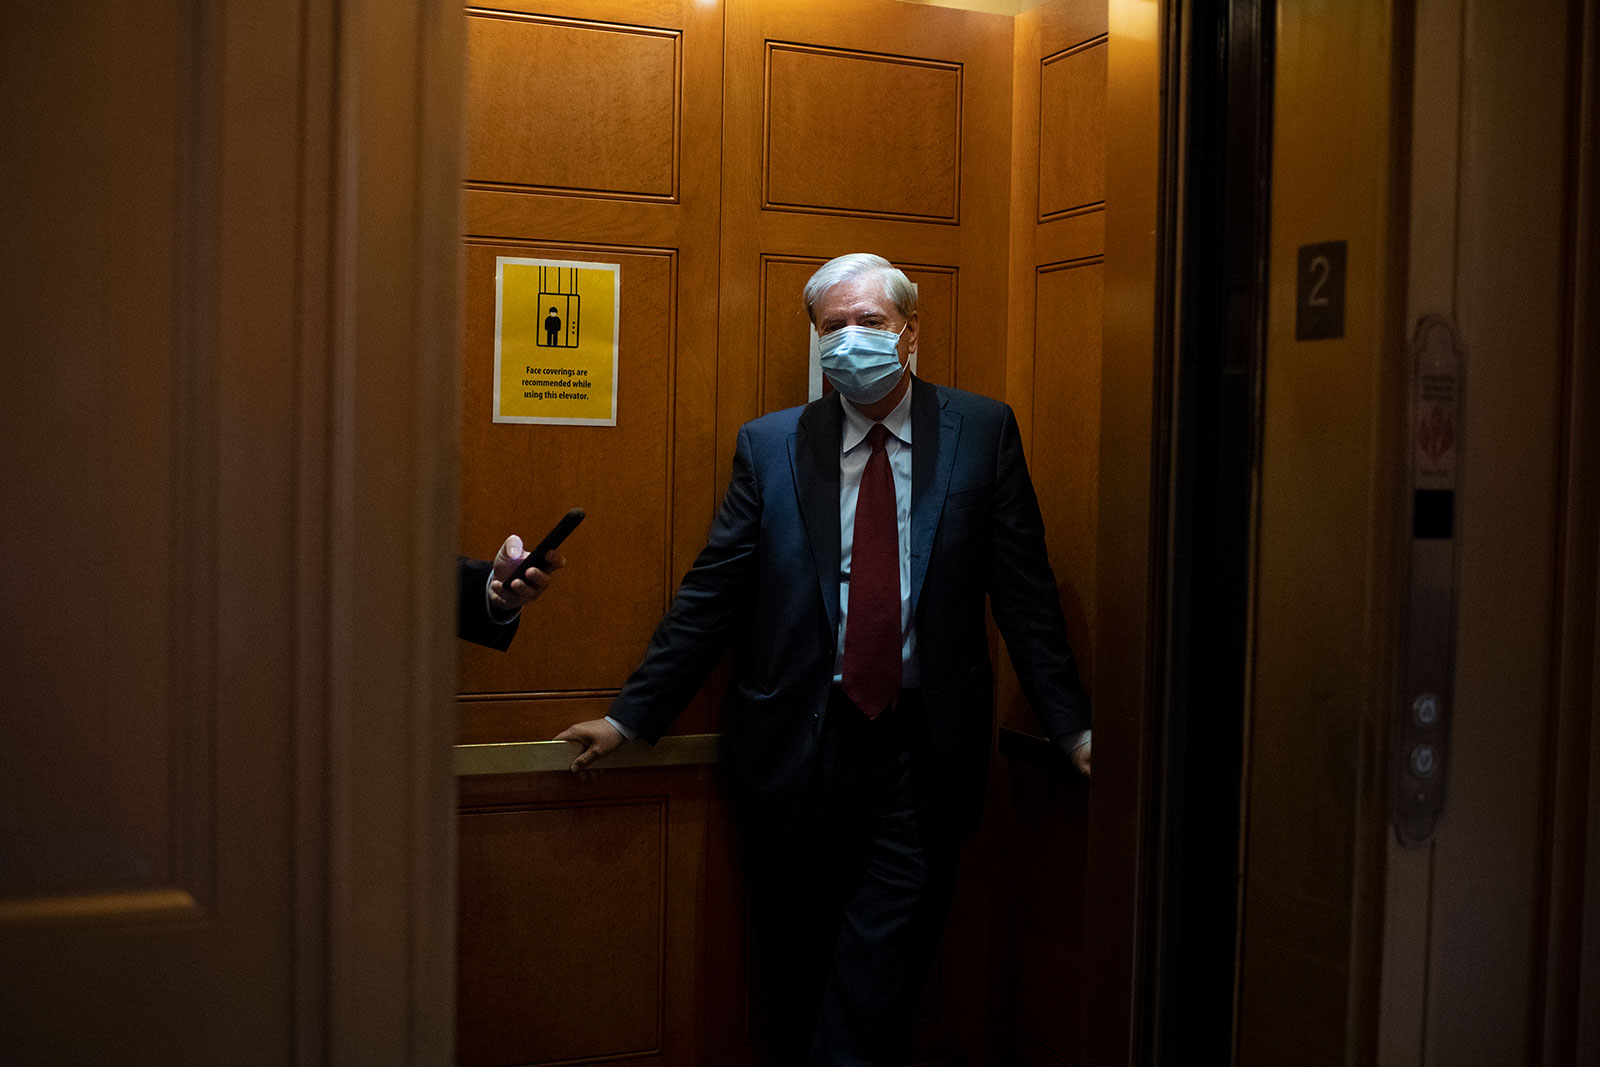 Sen. Linsey Graham departs from the Senate Floor after a vote on Wednesday, September 16.